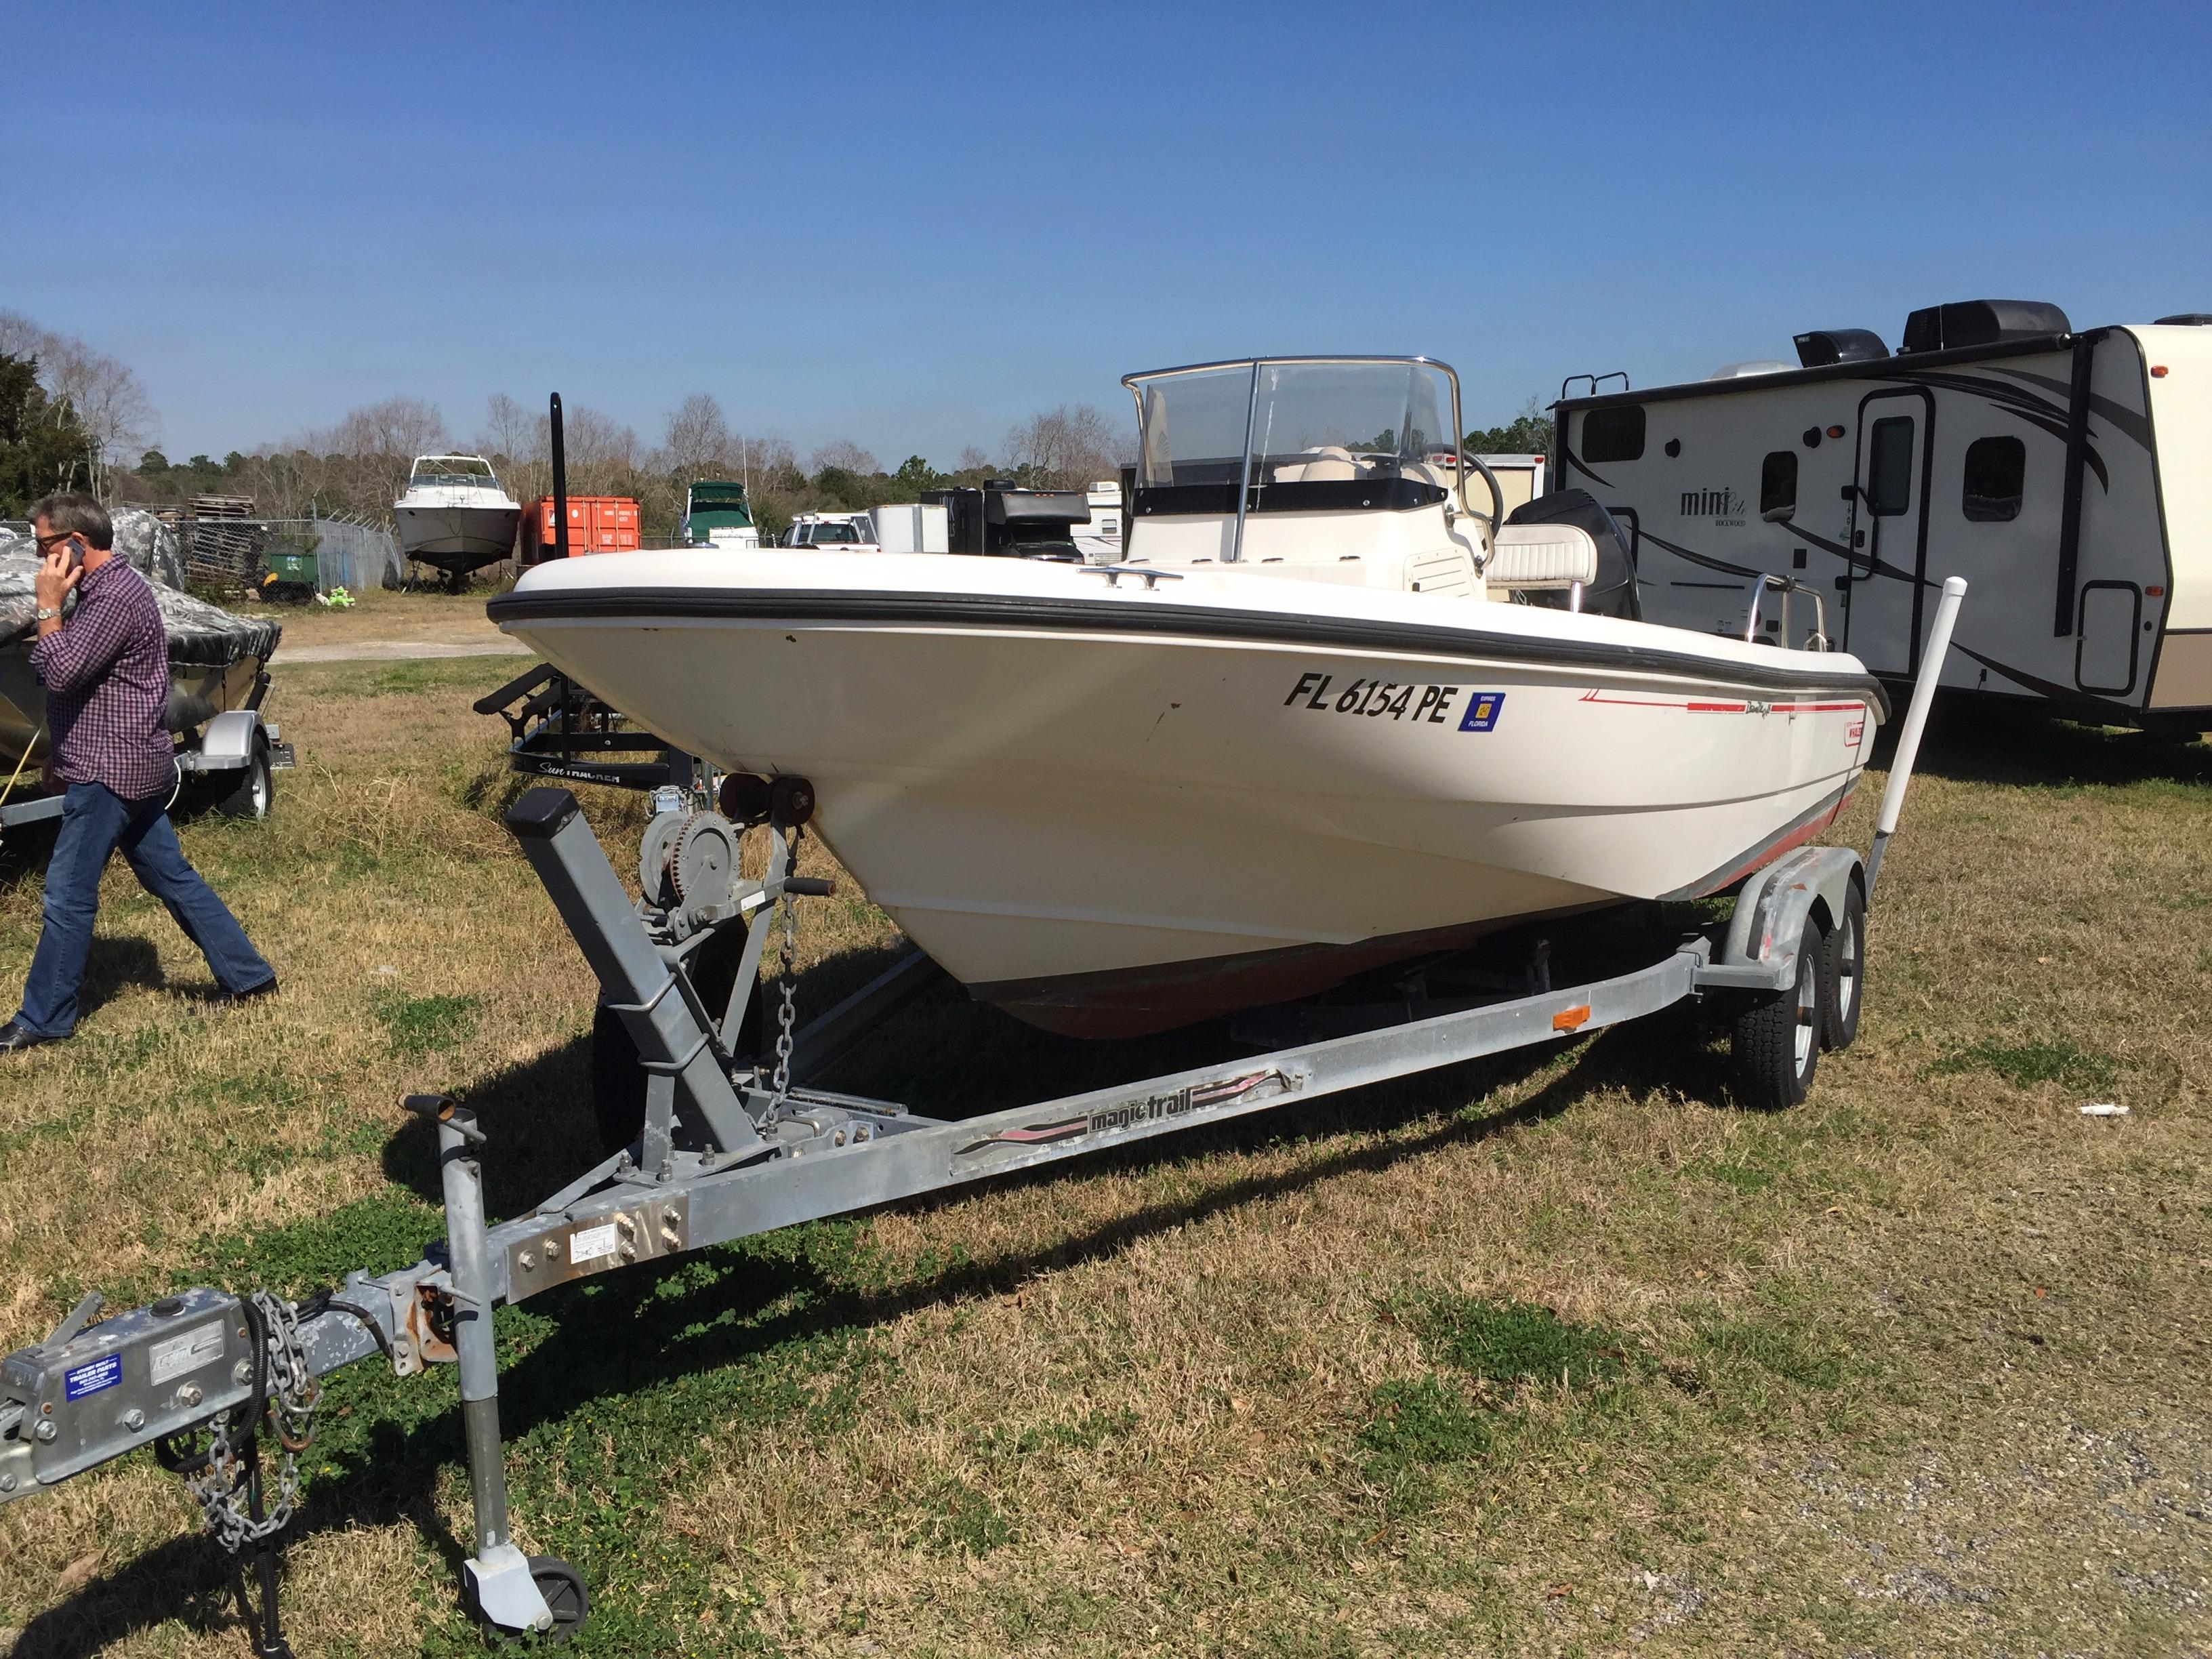 6145792_20170217112028541_1_XLARGE&w=924&h=693&t=1487359229000 1998 boston whaler 18 dauntless power boat for sale www boston whaler wiring harness at webbmarketing.co